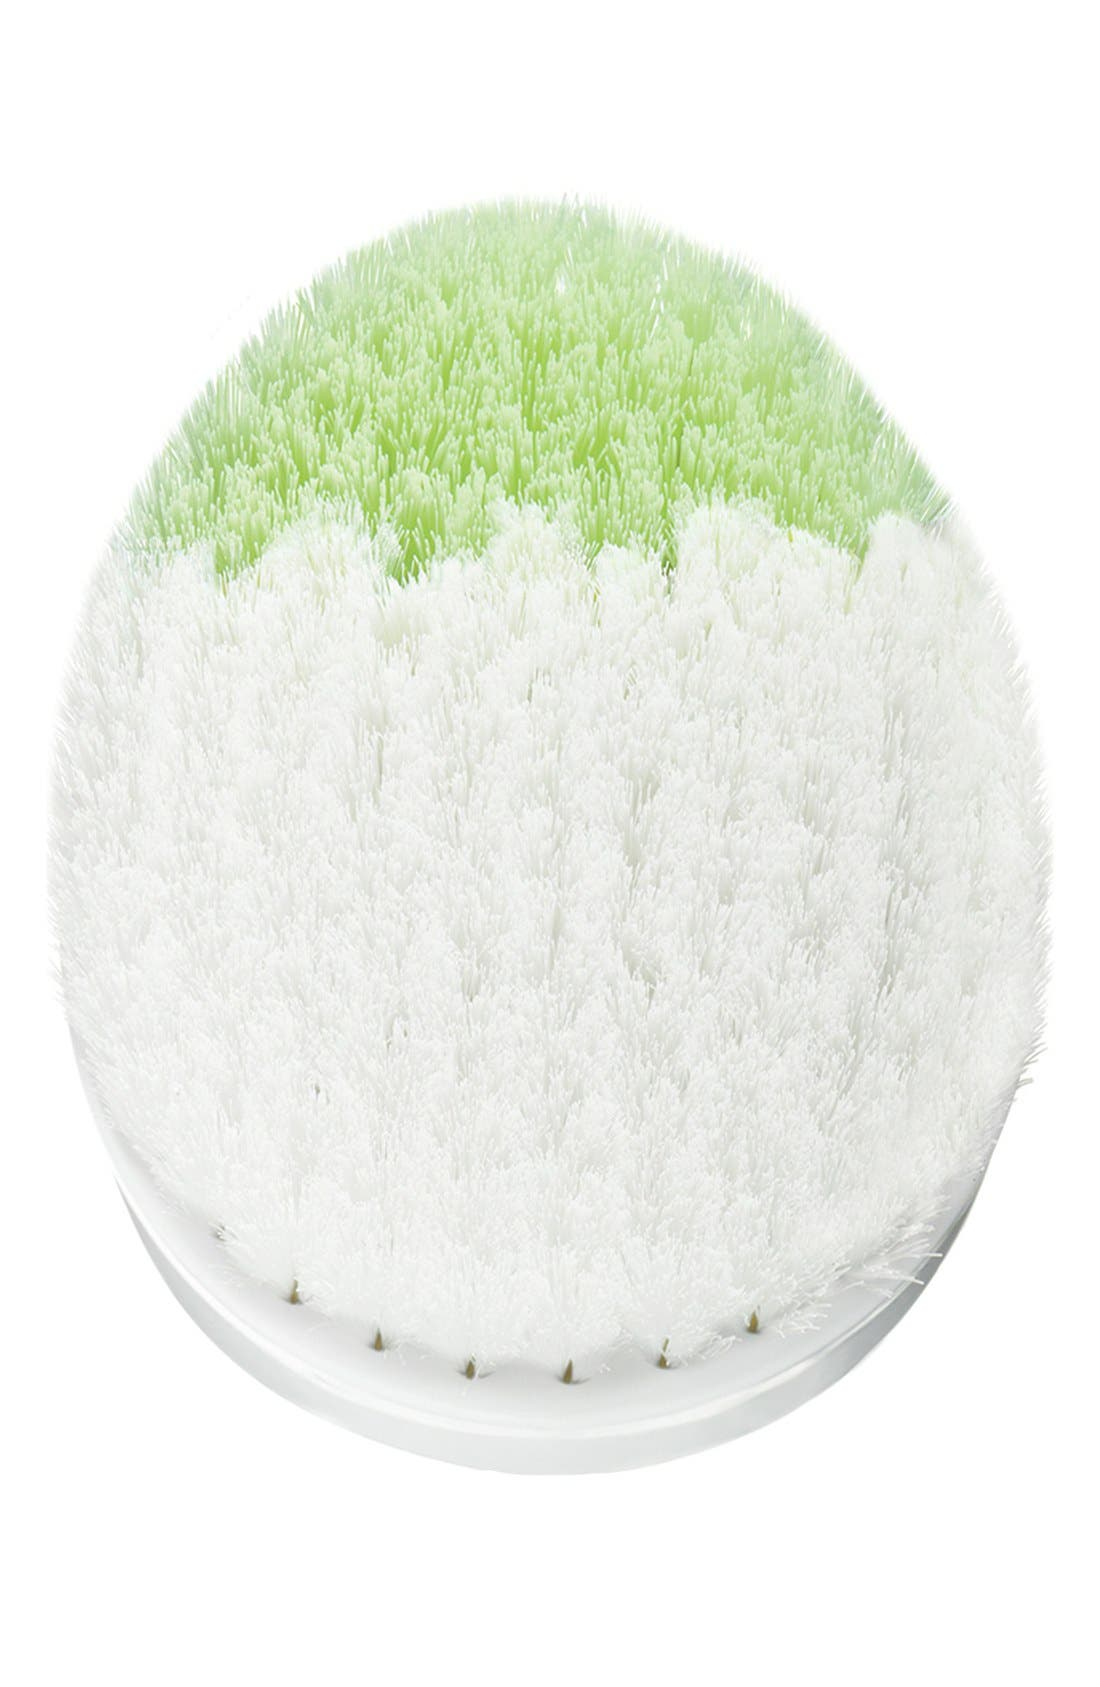 Sonic System Purifying Cleansing Brush Head,                             Main thumbnail 1, color,                             NO COLOR